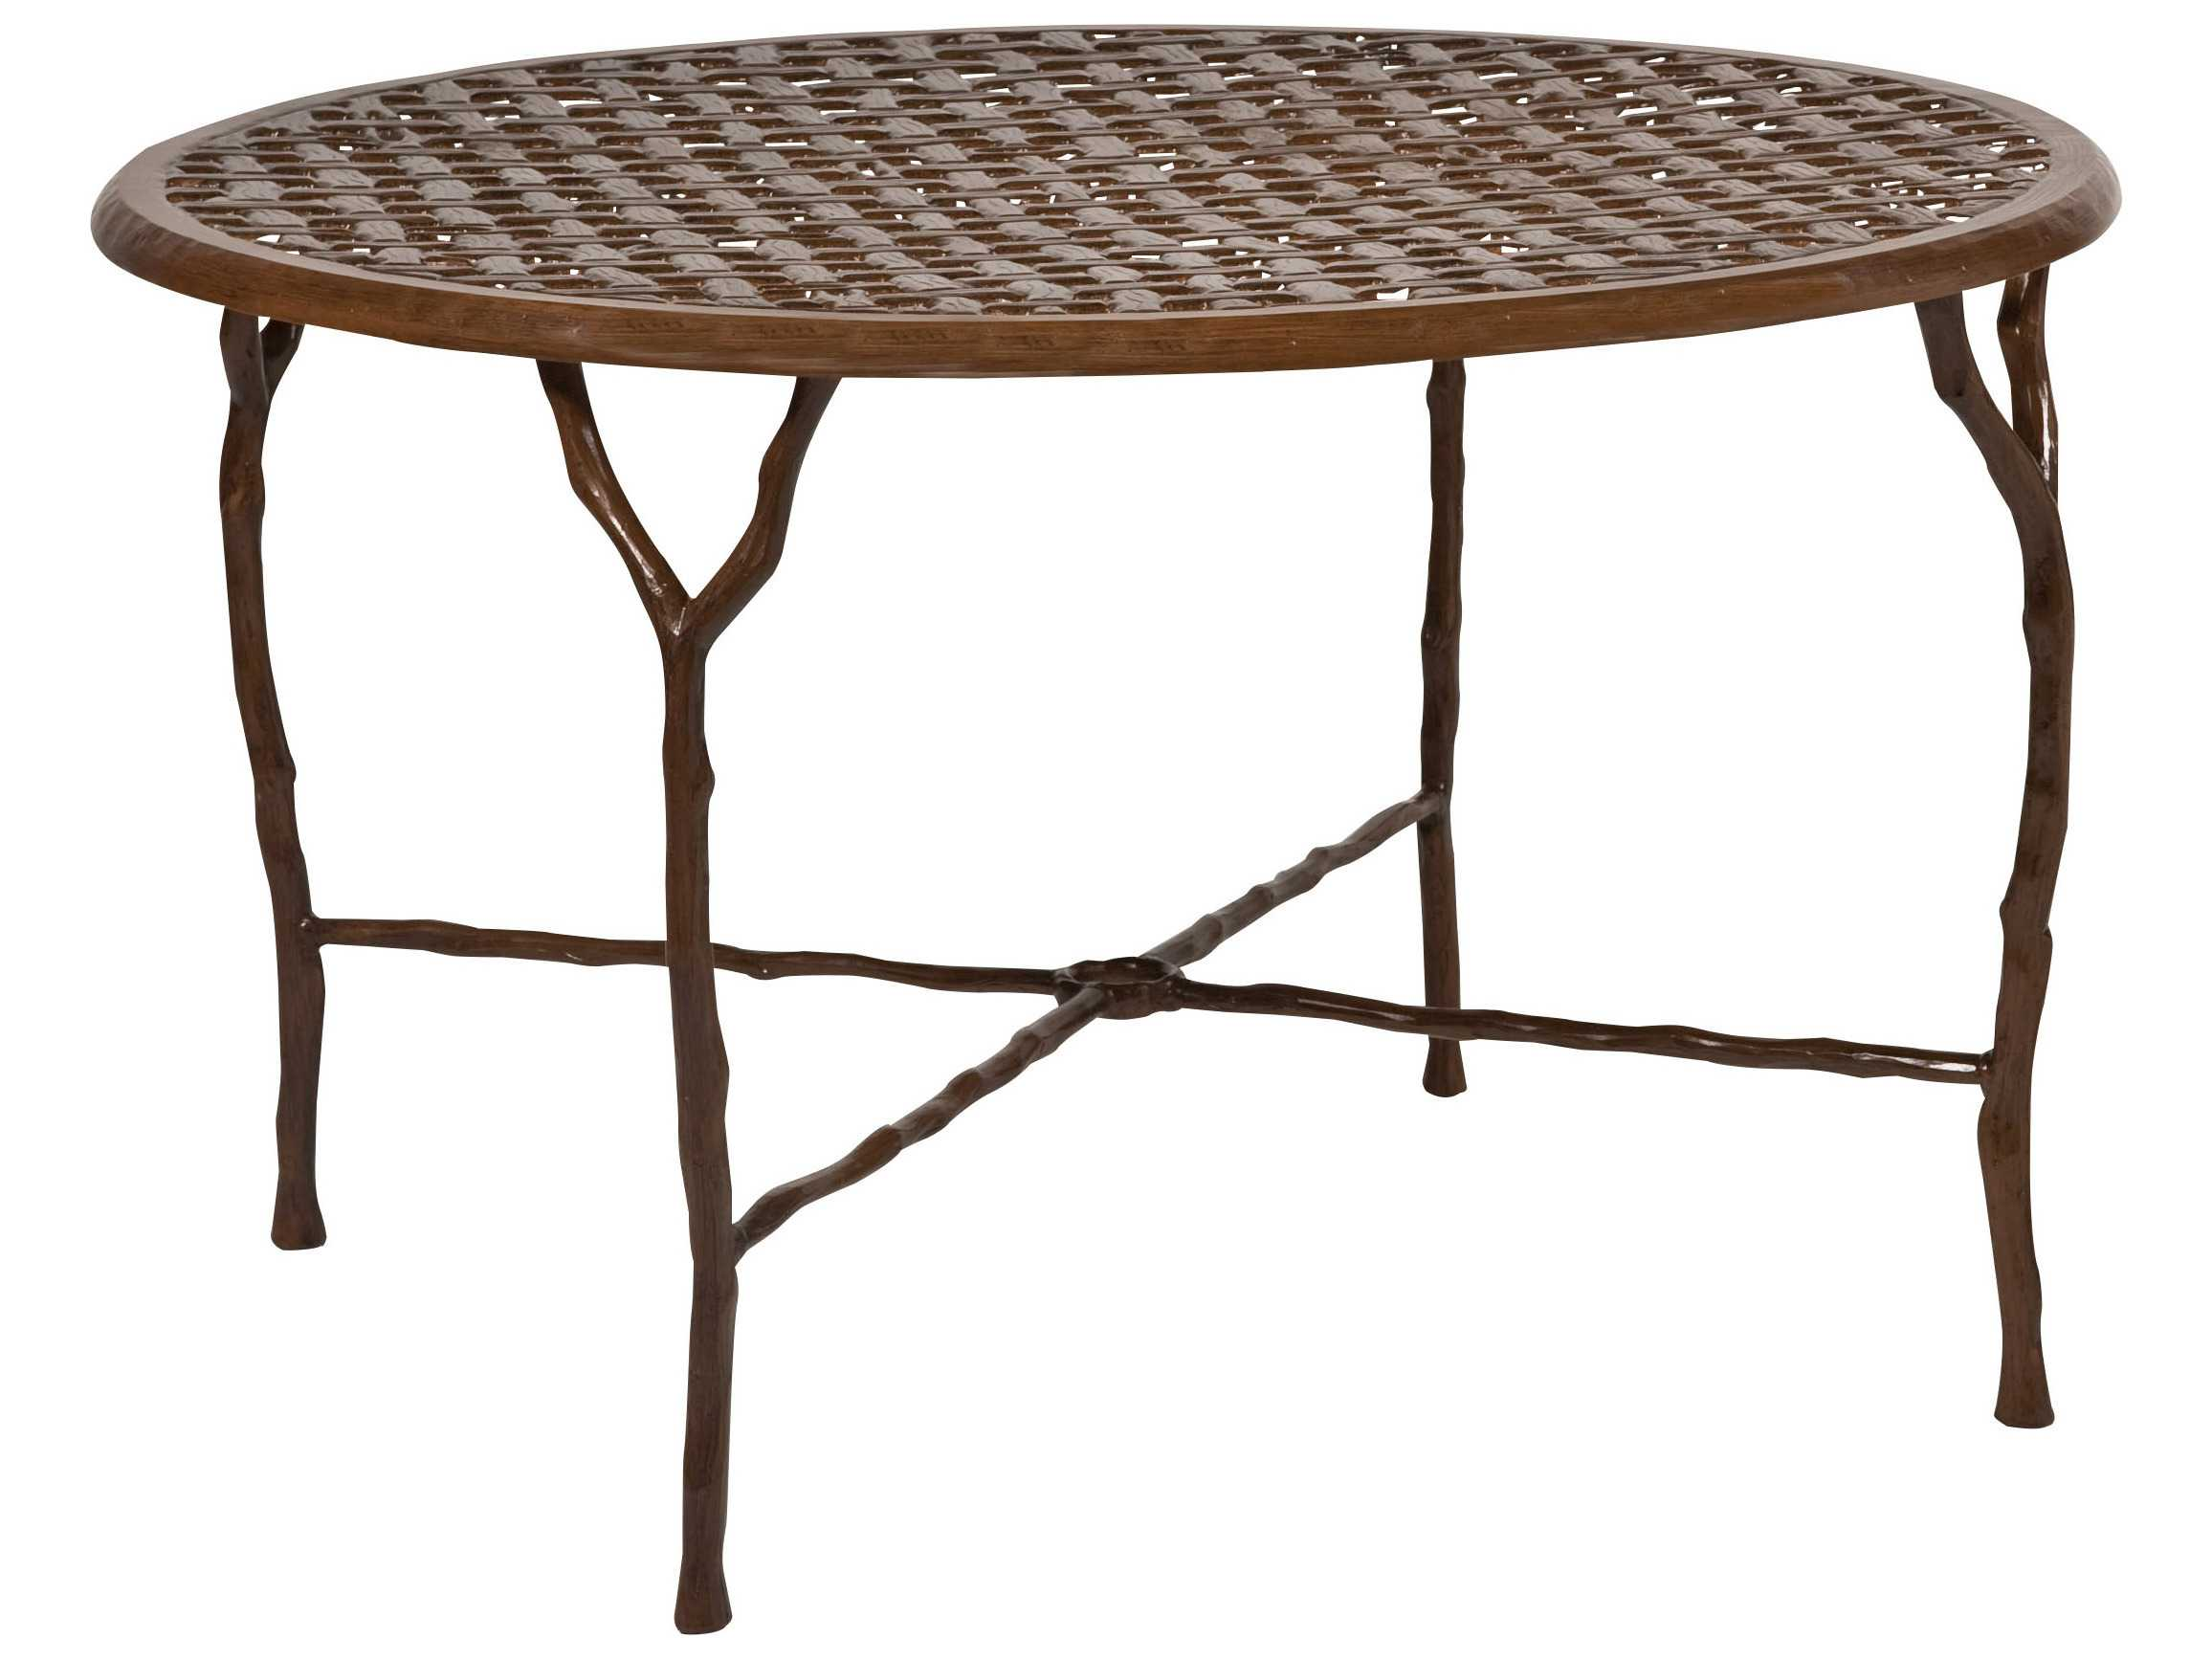 Woodard latour cast aluminum 48 3 round dining table with - Picnic table with umbrella hole ...